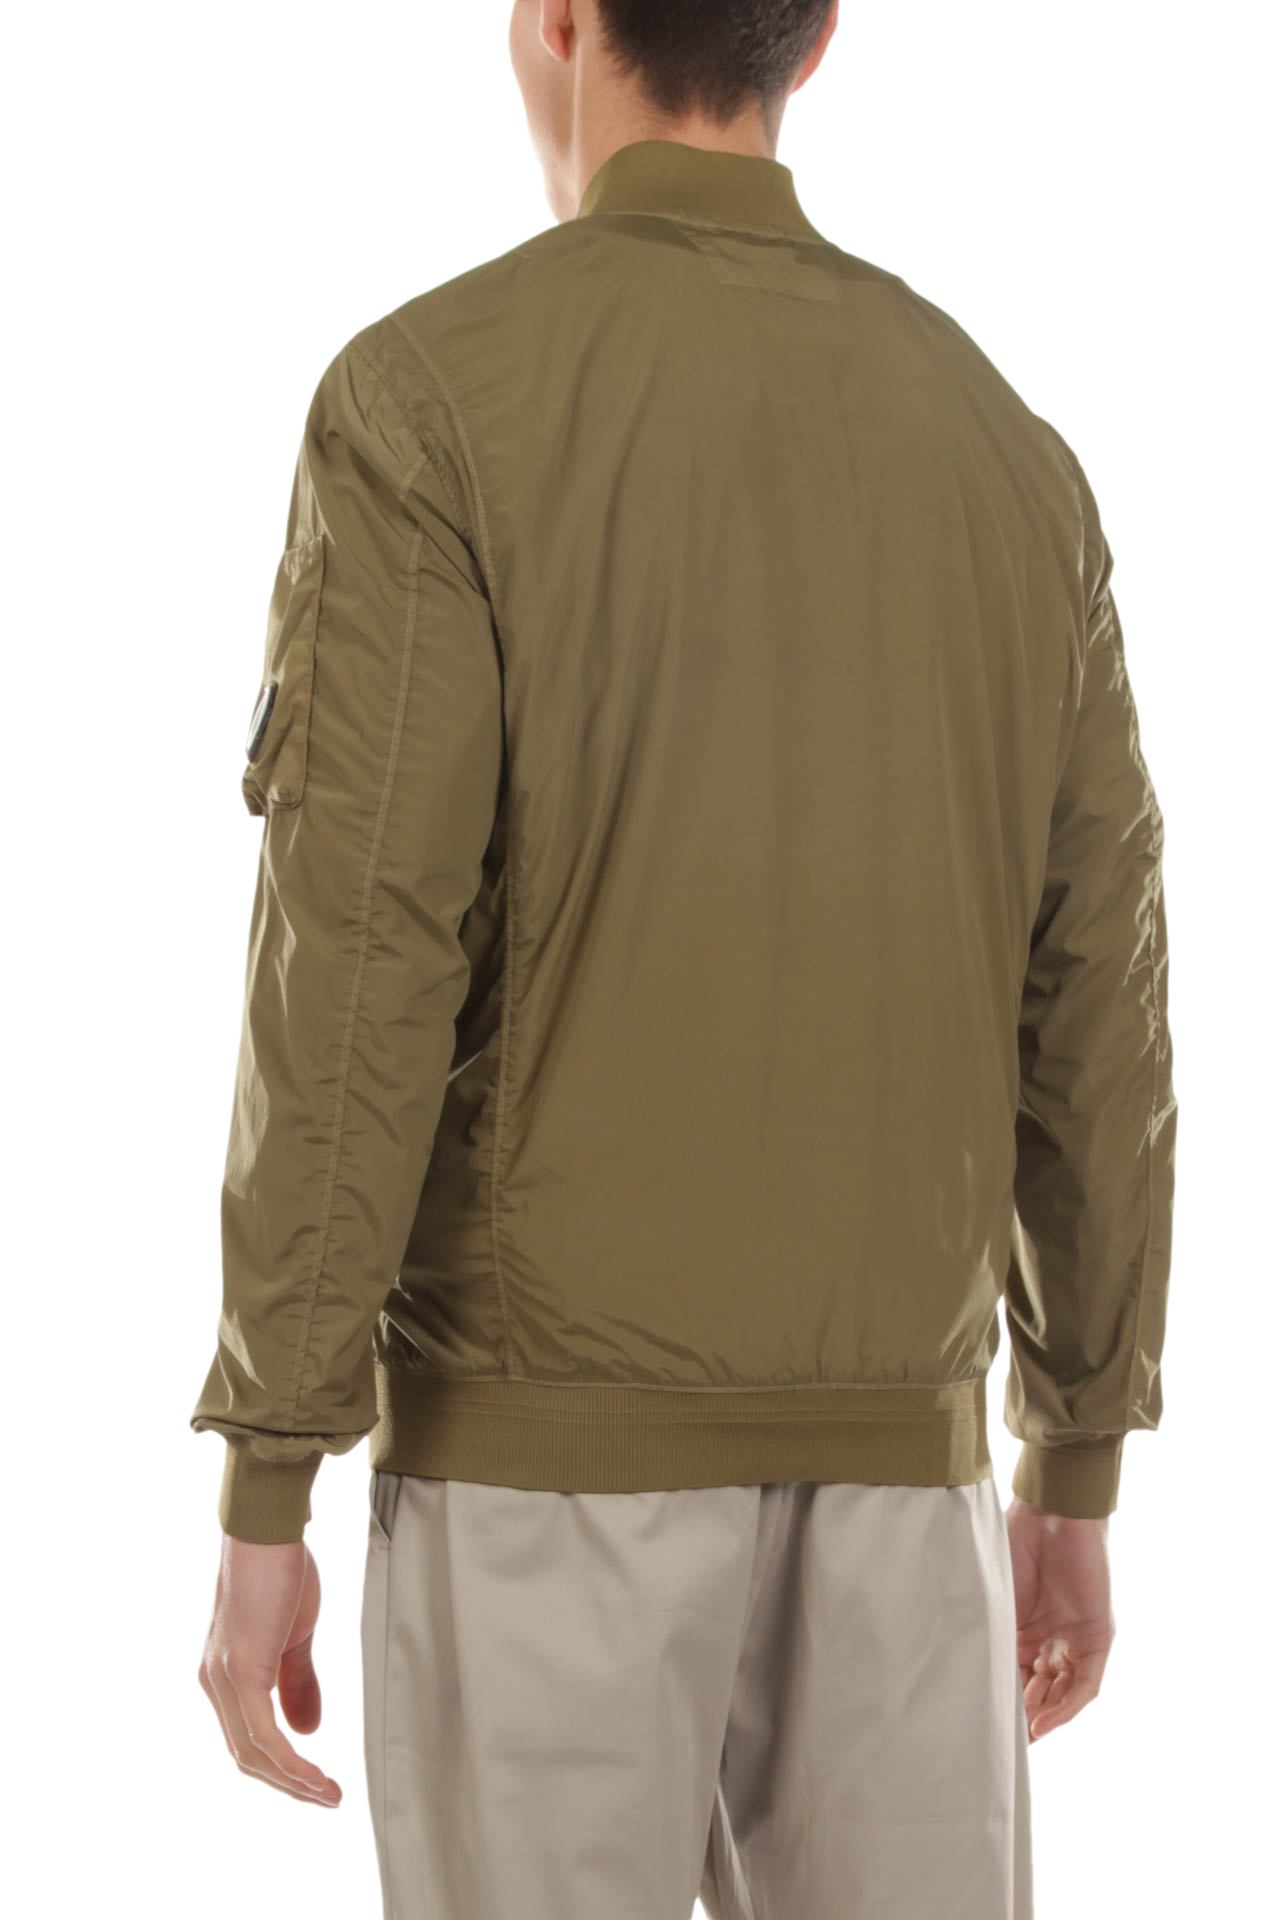 C.P.COMPANY | Outerwear | 10CMOW166A005864G329